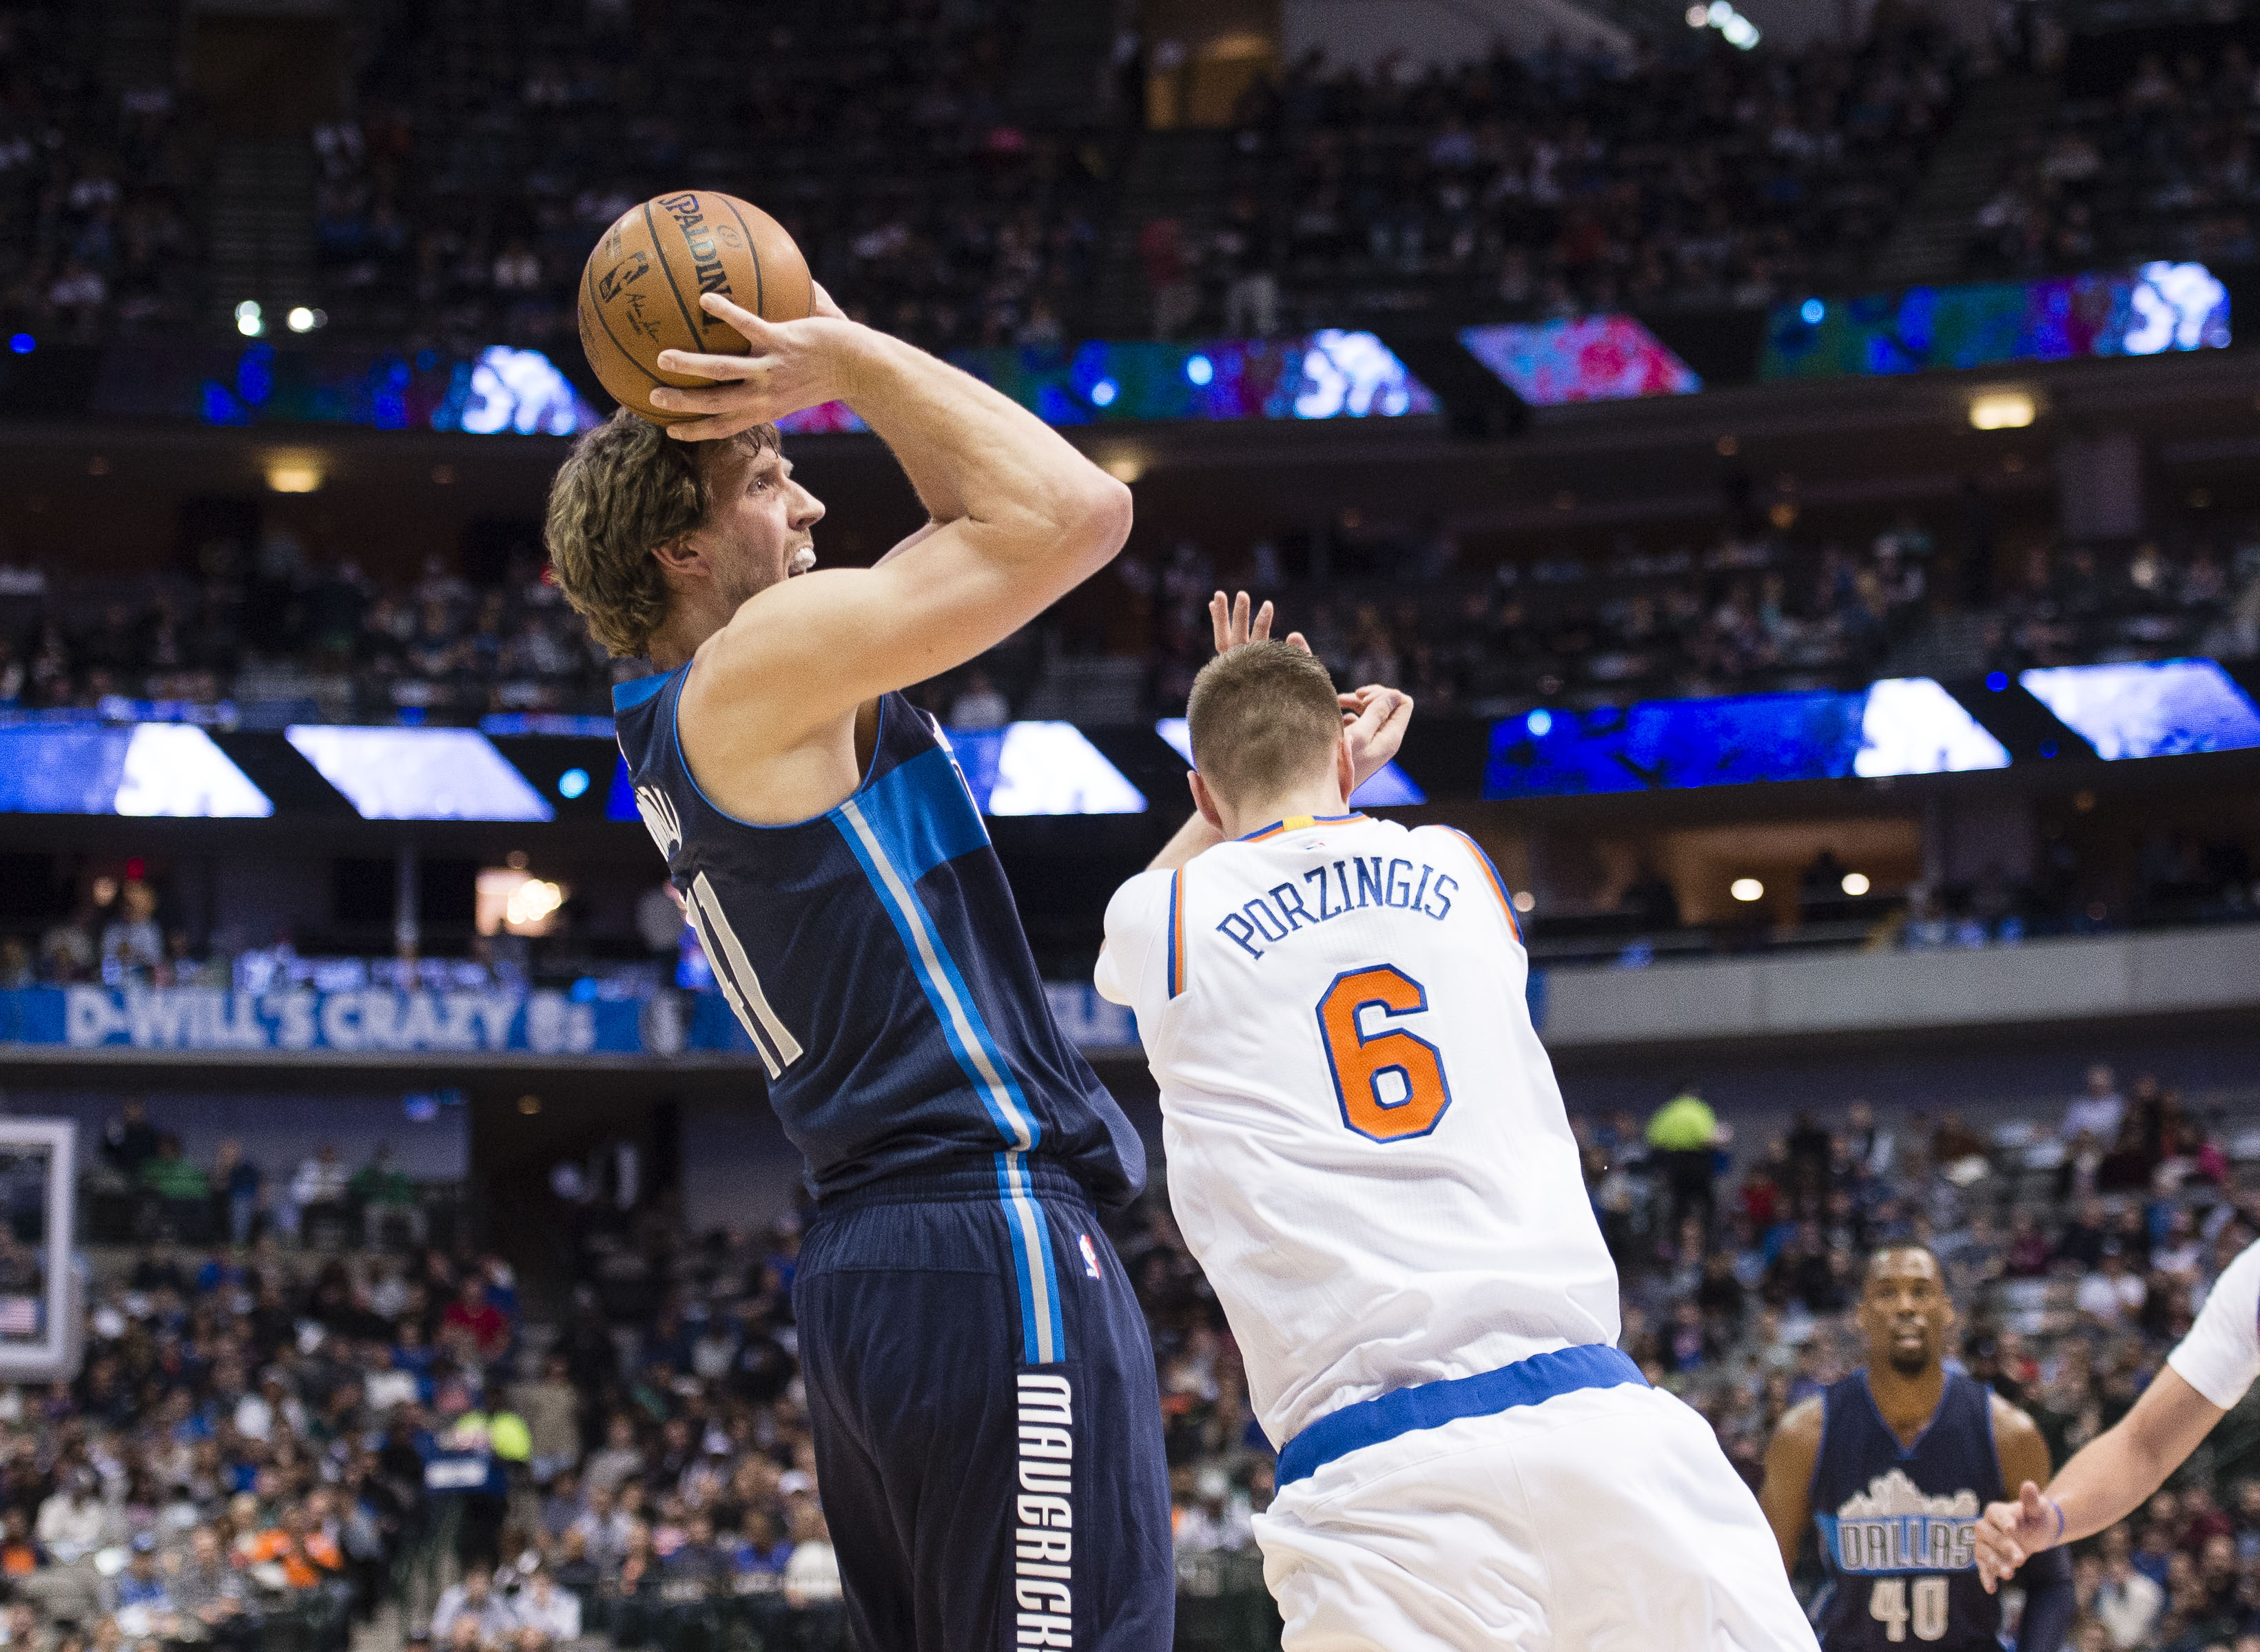 9837527-nba-new-york-knicks-at-dallas-mavericks